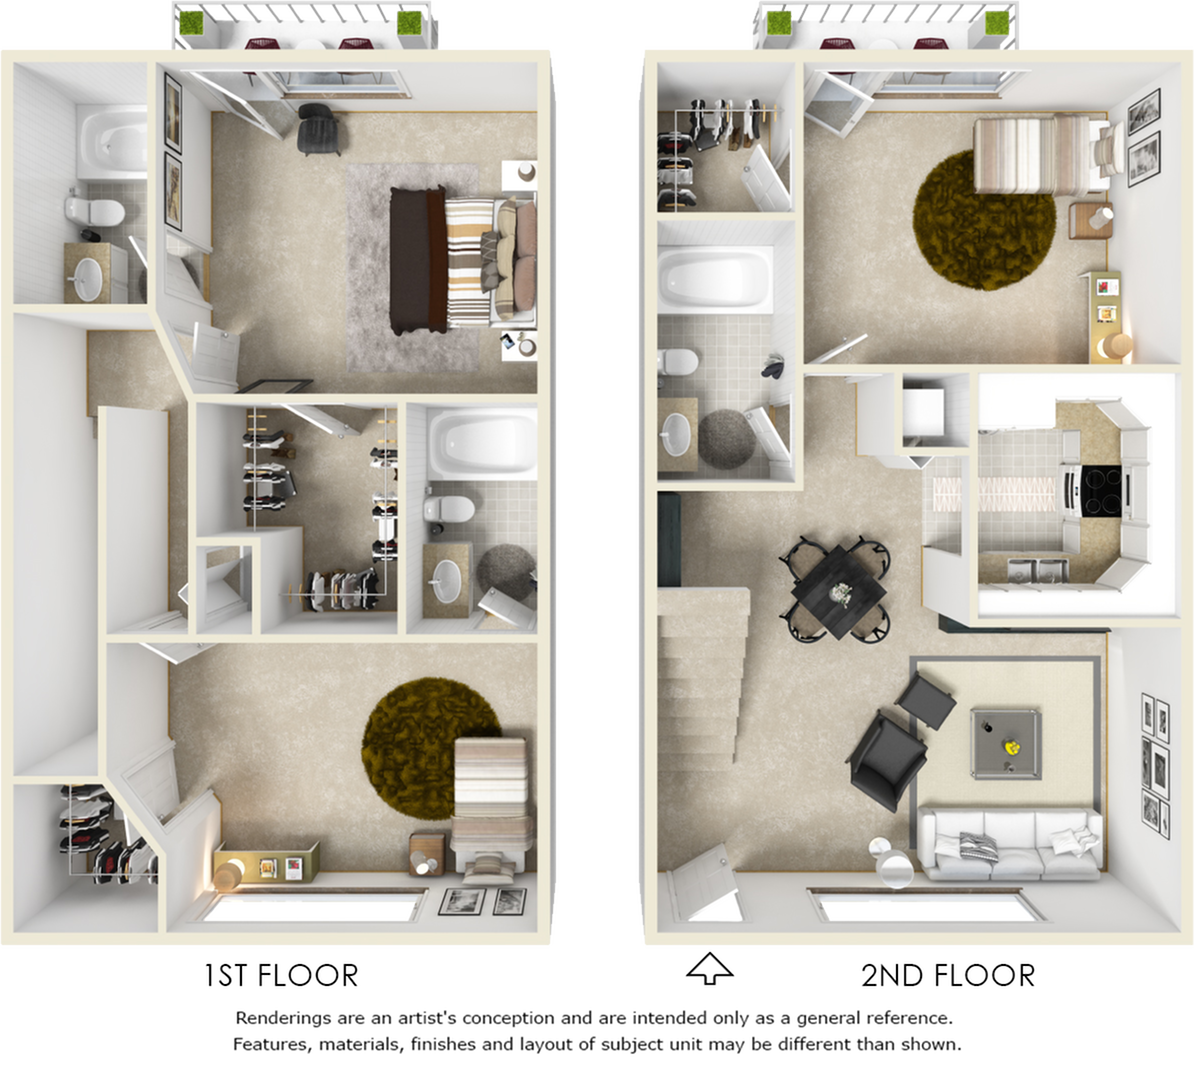 Kensington 3 bedrooms 3 bathrooms floor plan